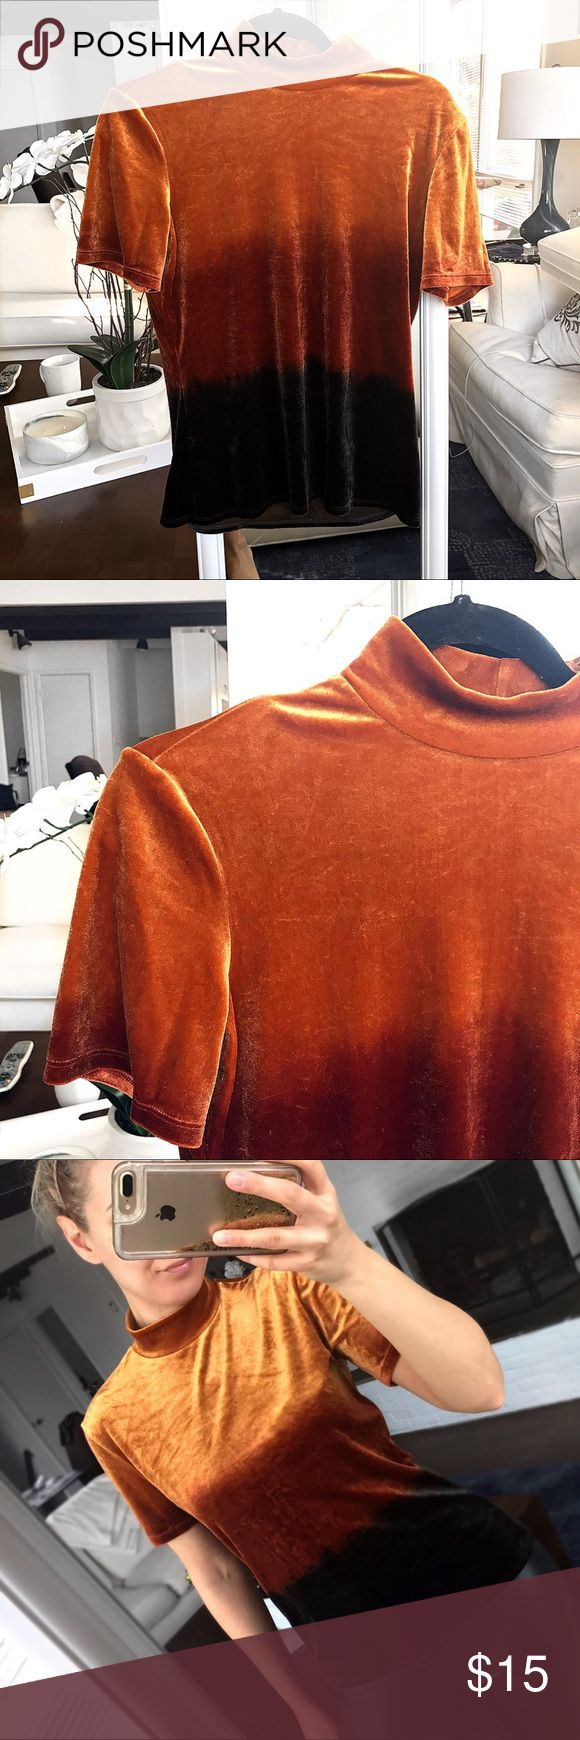 Orange Brown Ombré Turtleneck T-Shirt 🔥 Like brand new. Best for size medium if you wanted to be fitted looking. 90% polyamide and 10% elastase. Marks & Spencer Tops